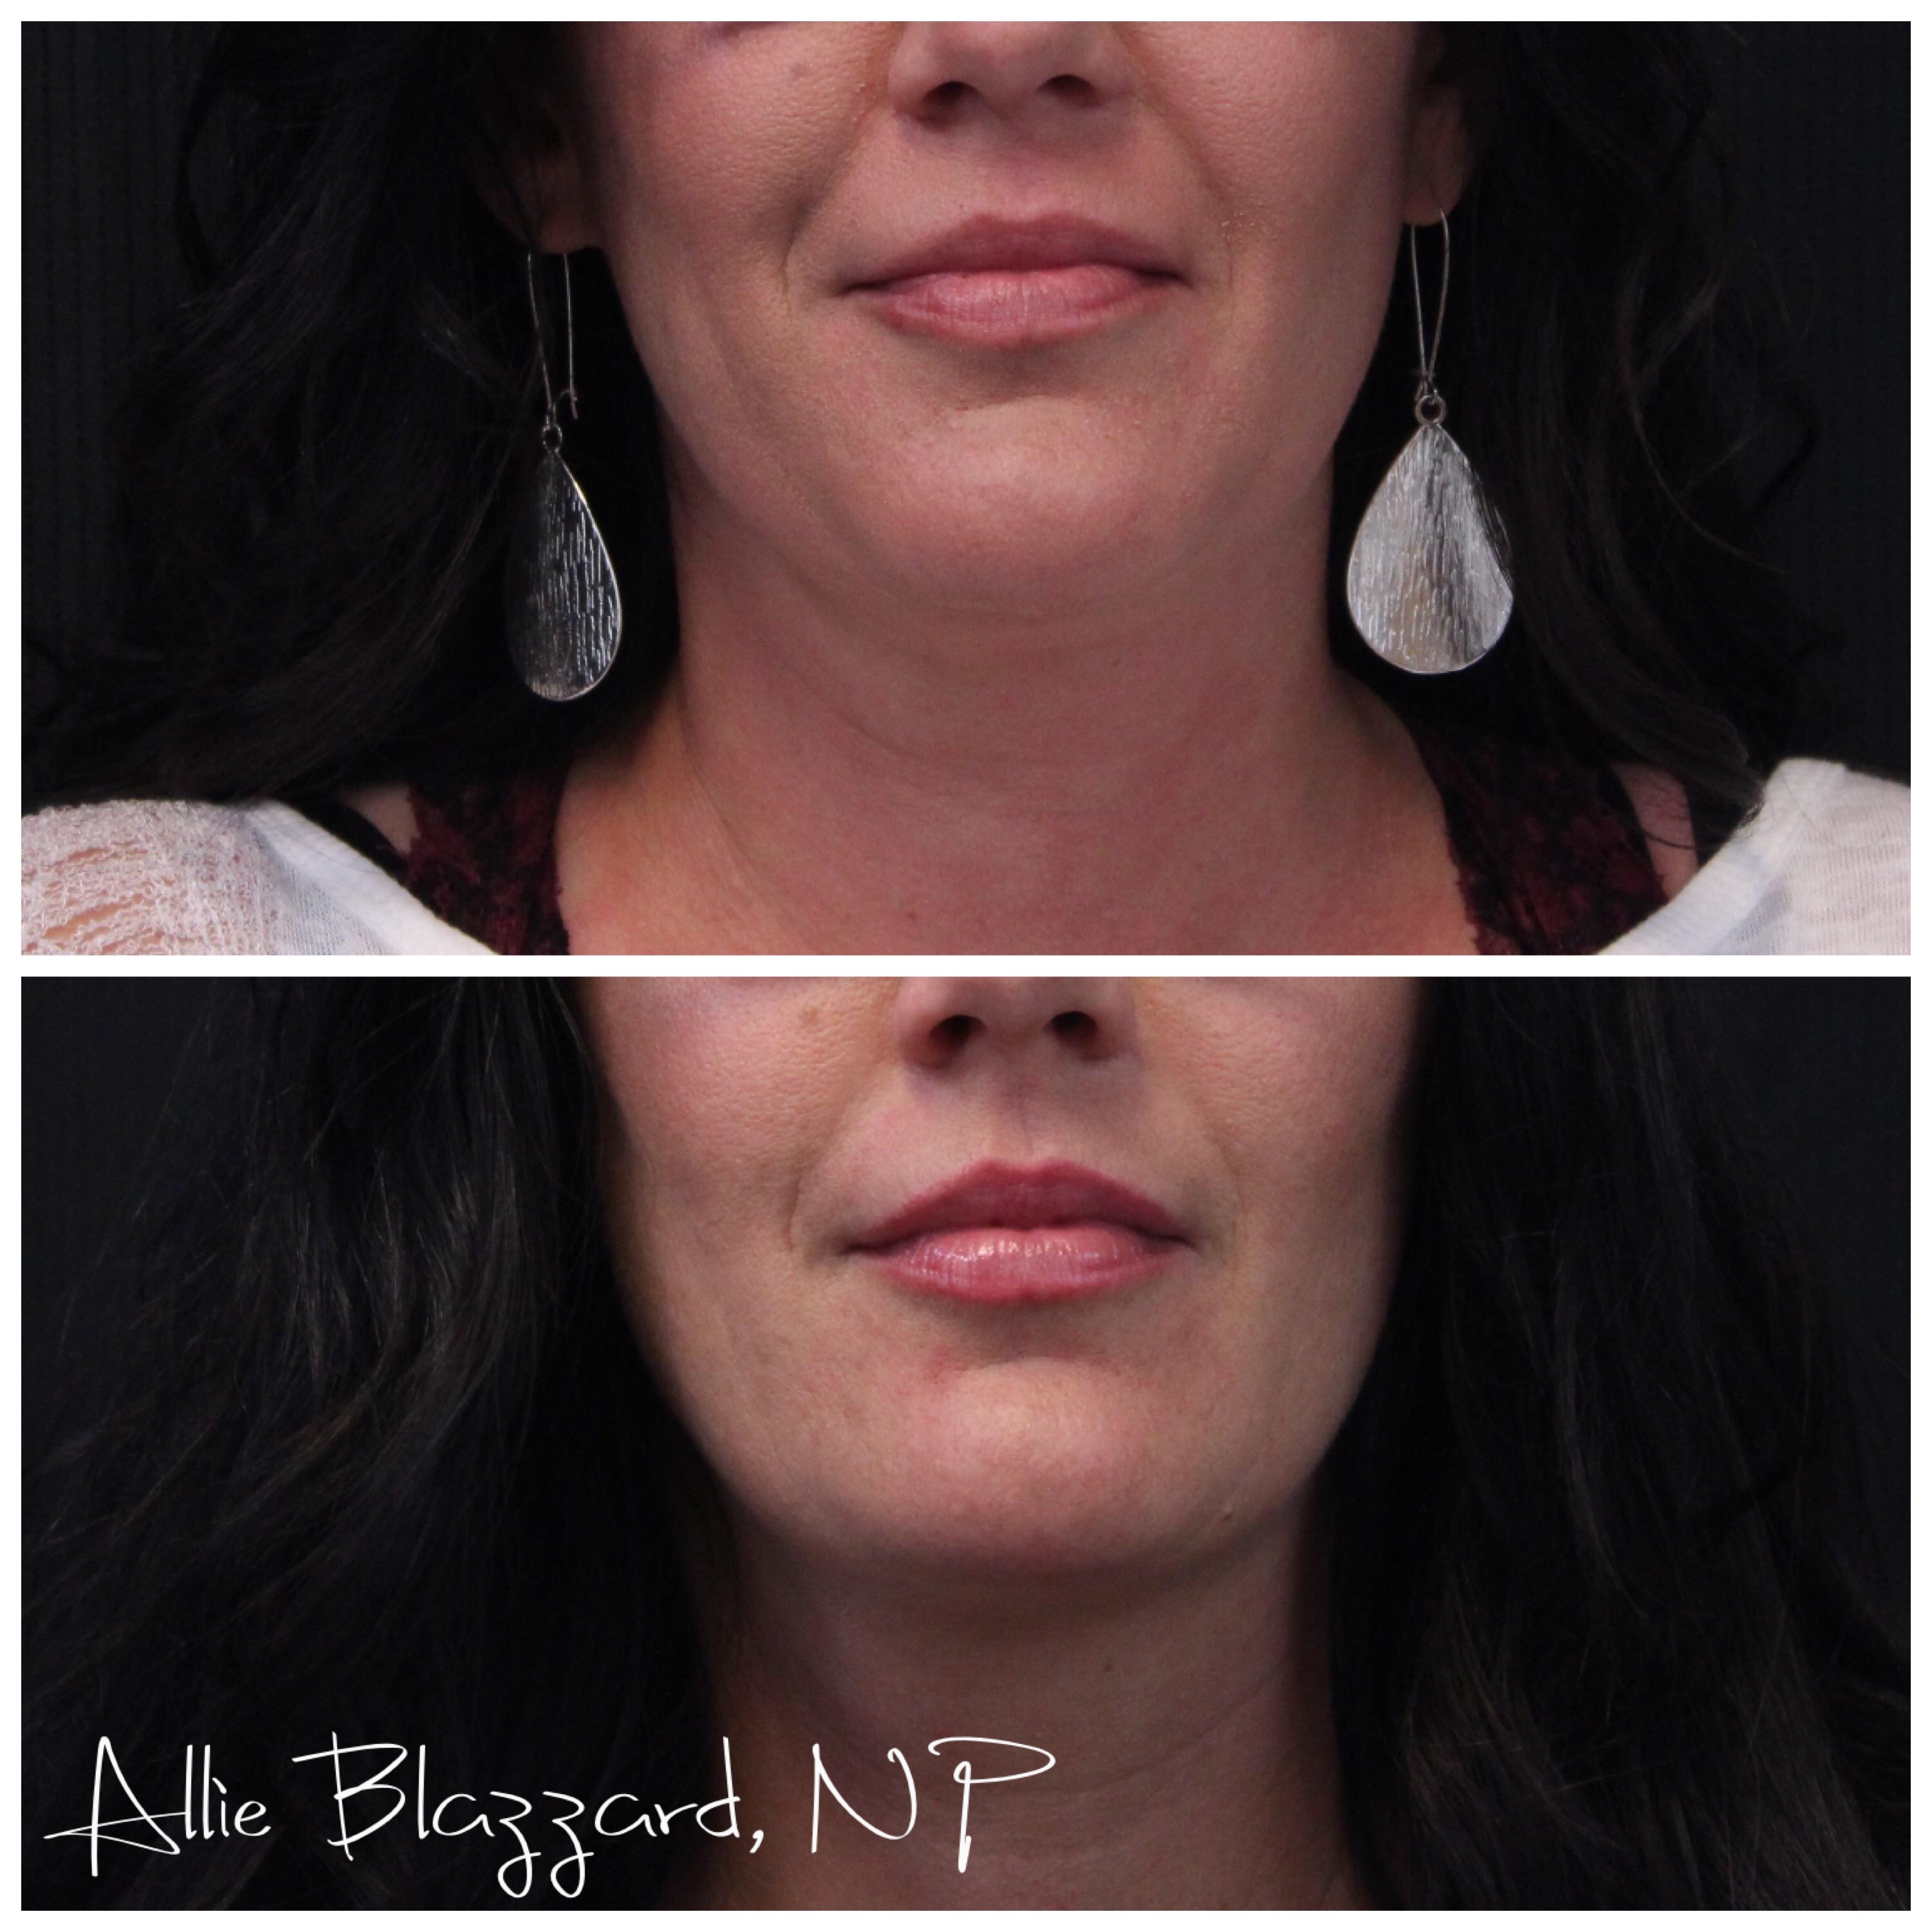 Kybella® Before and After, St. George, UT